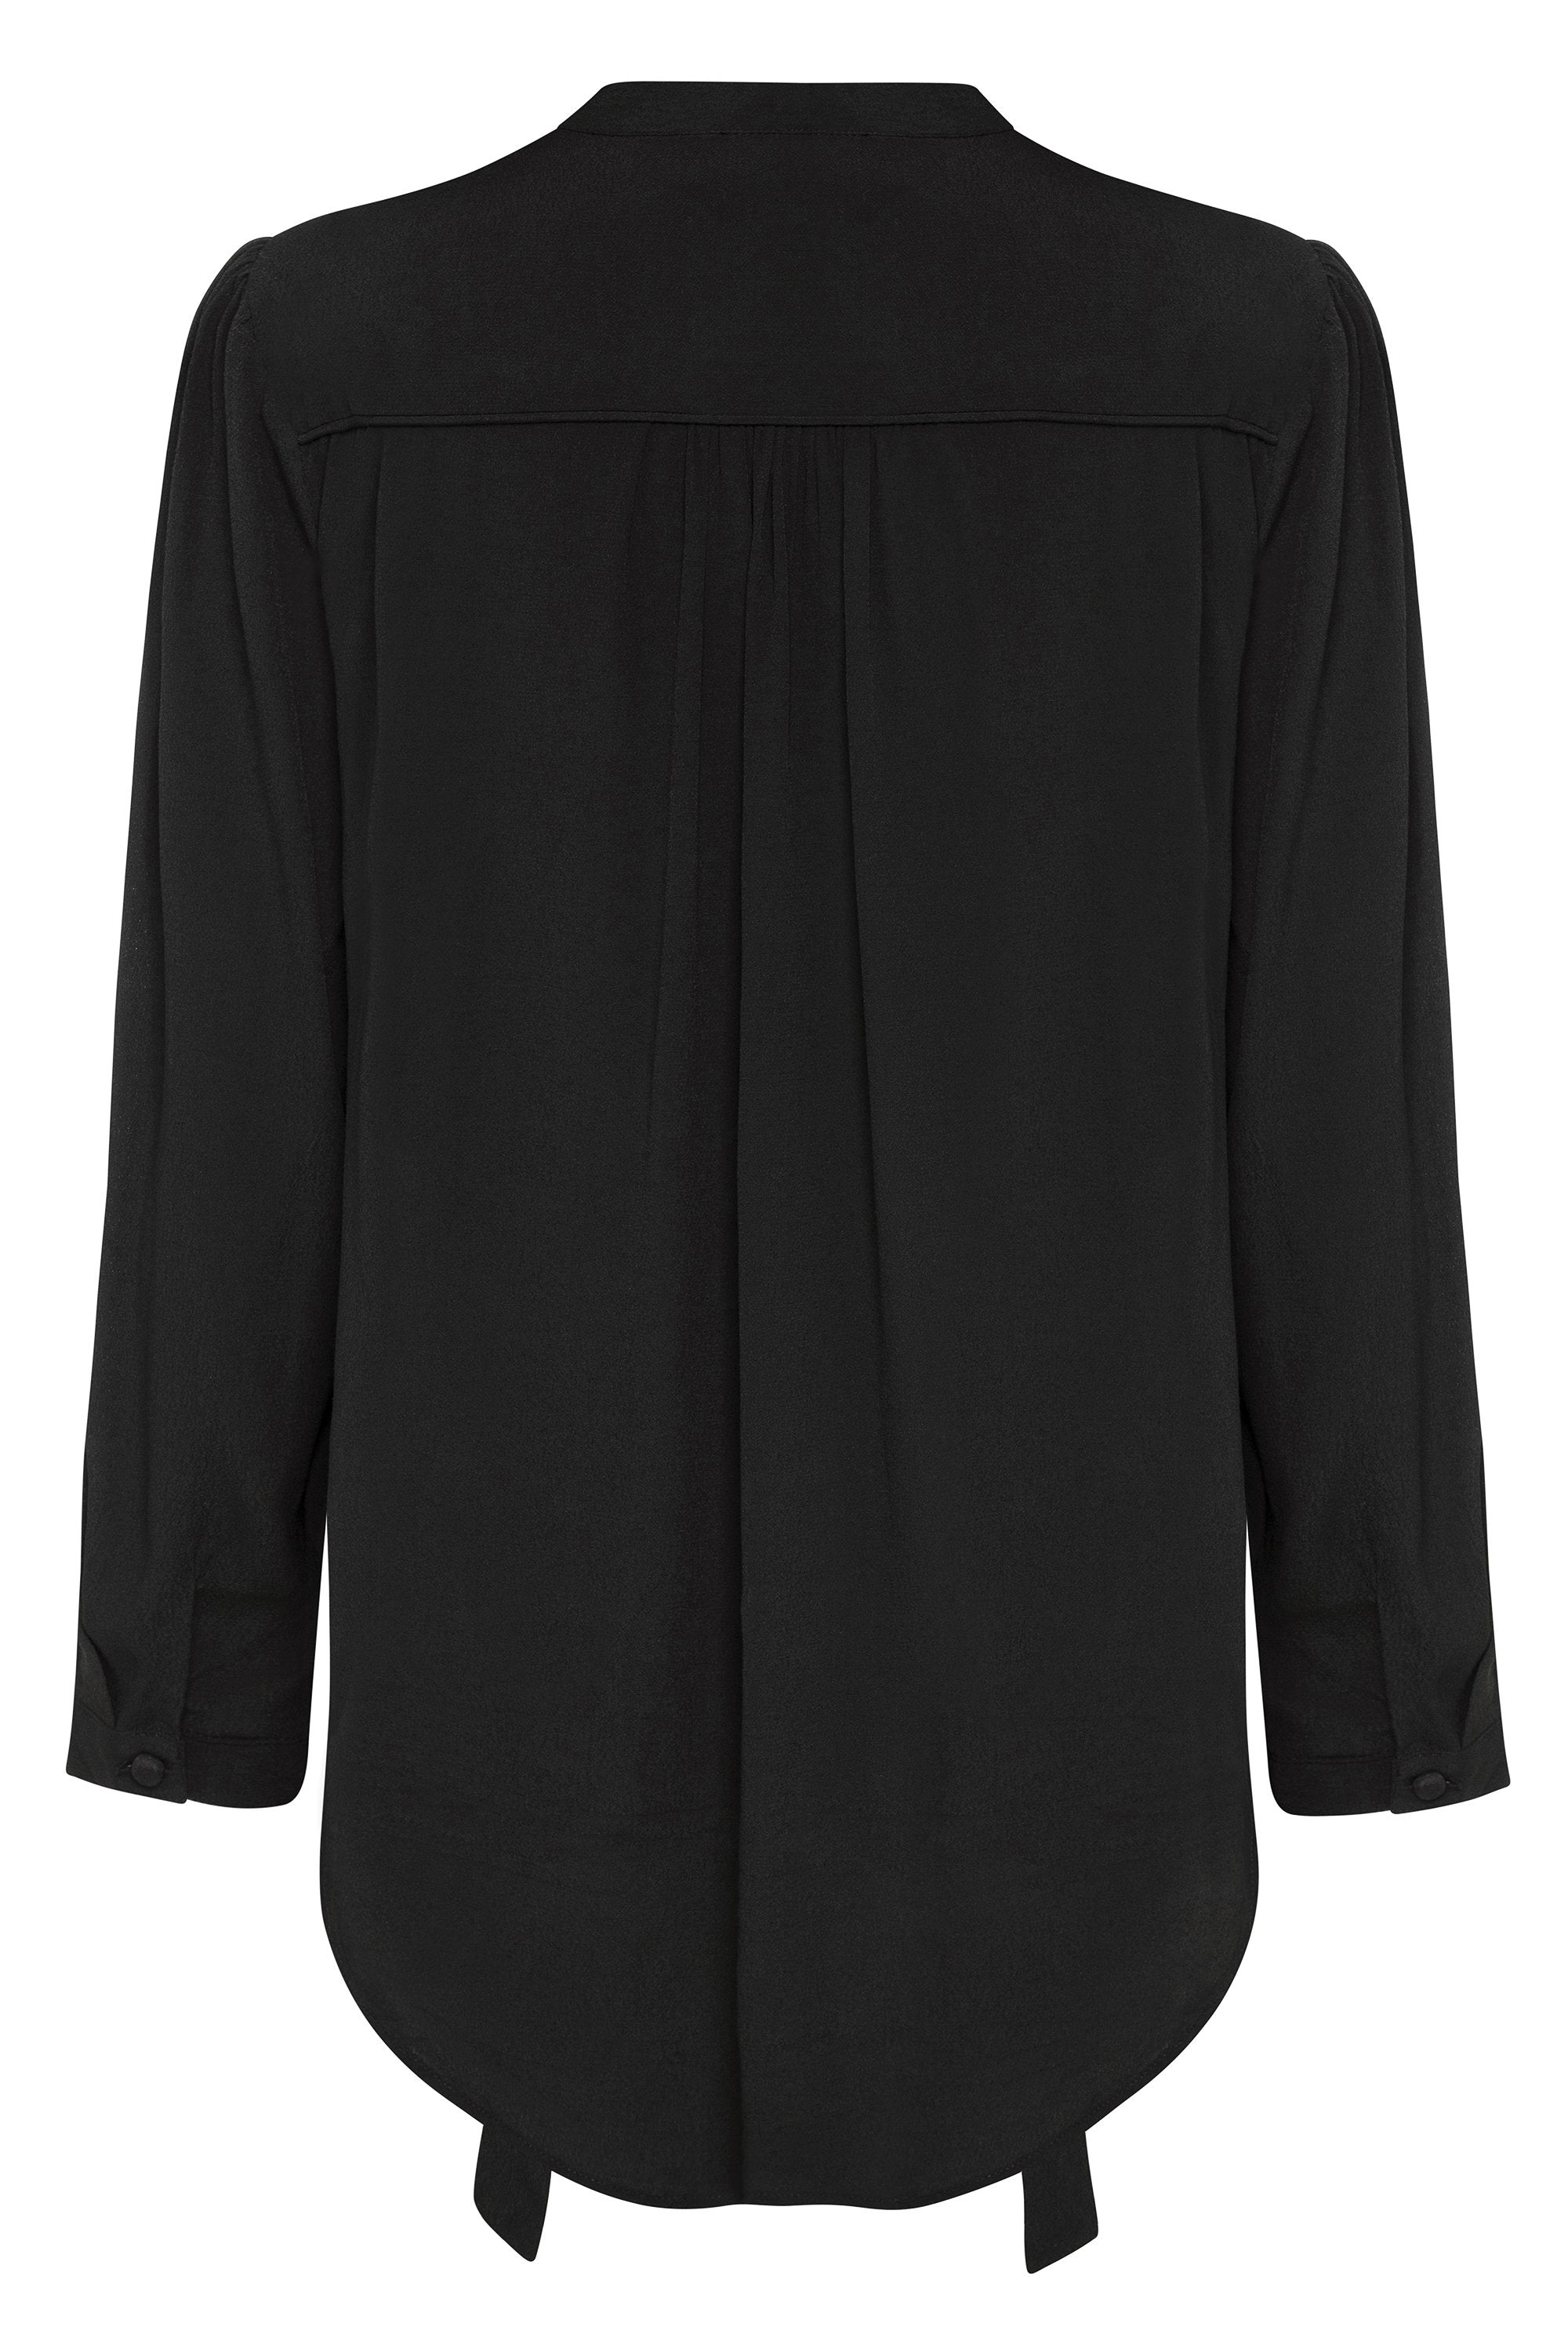 Isabella Blouse In Black